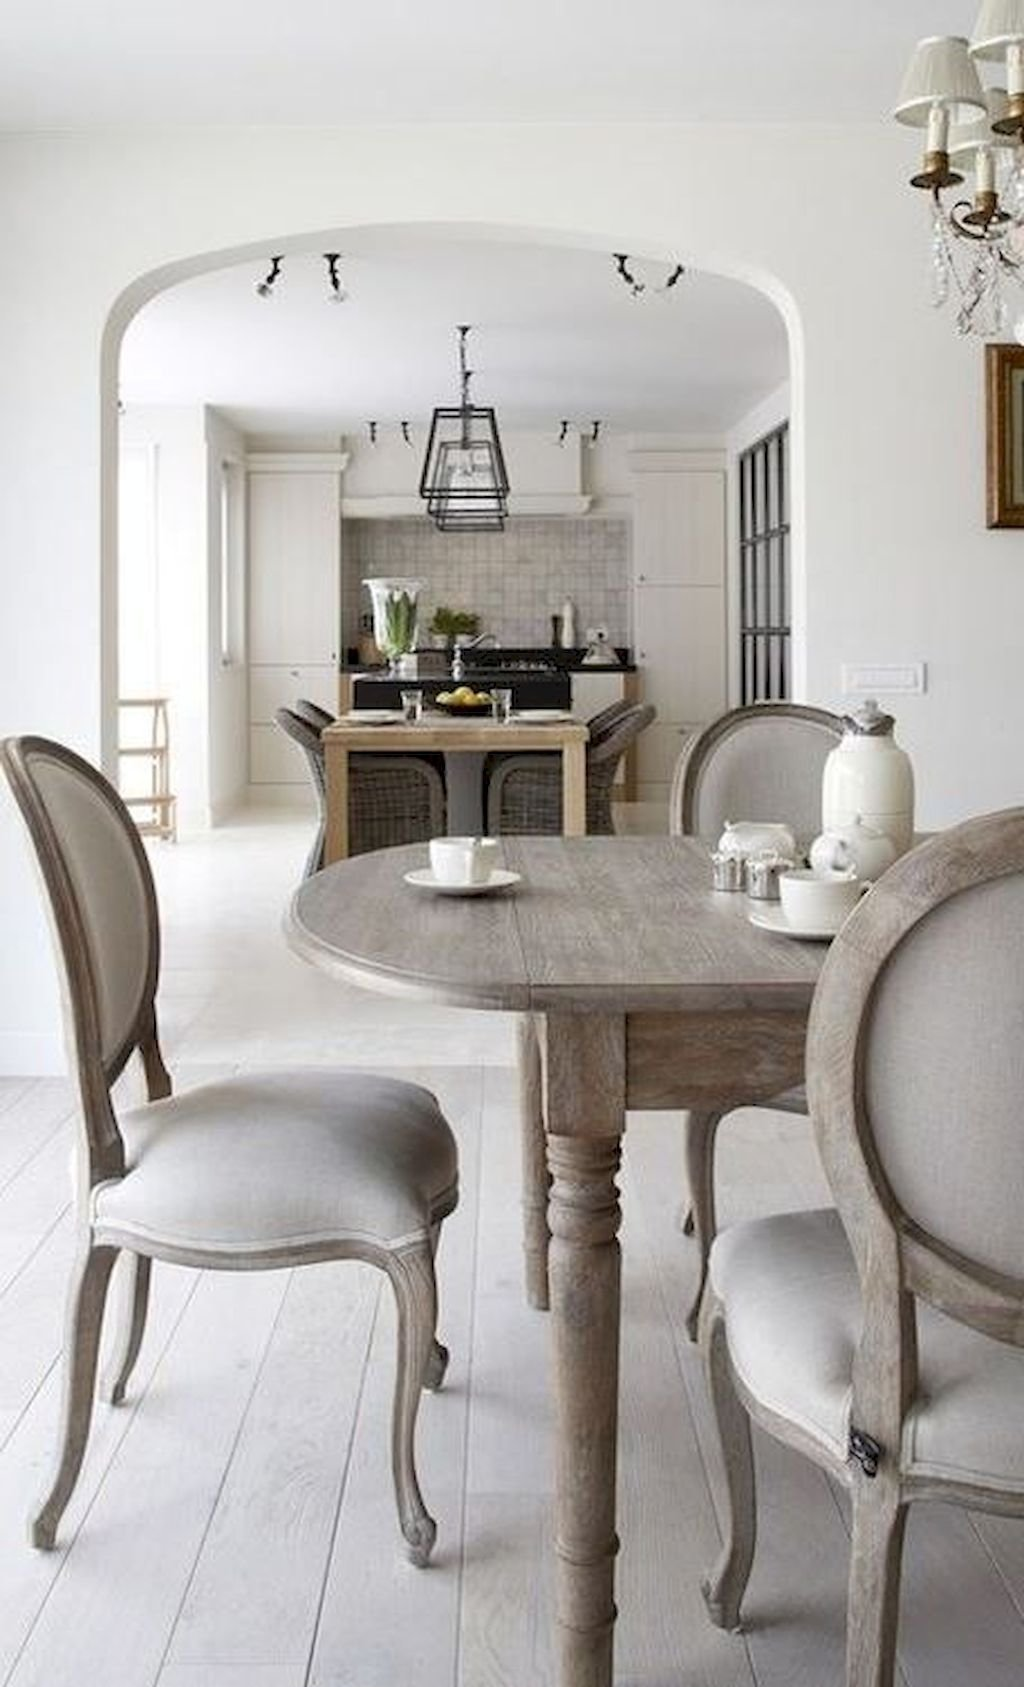 10 Perfect French Country Dining Room Ideas 70 beautiful french country dining room decor ideas decorecor 2021